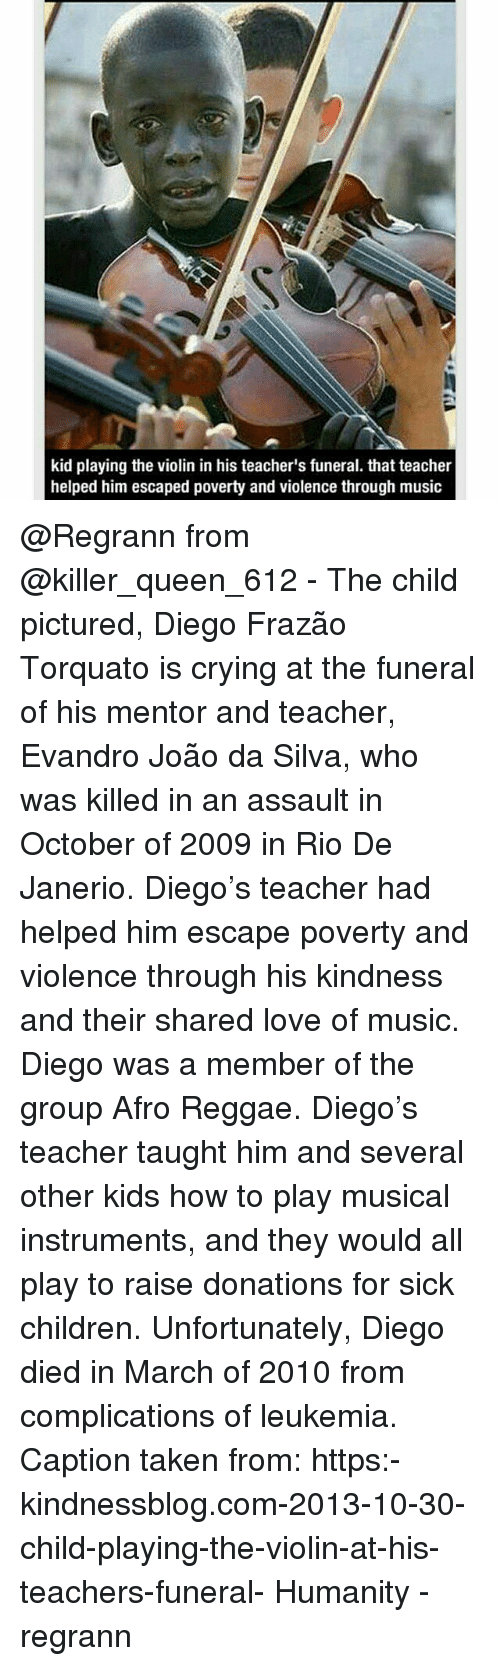 Child's Play: kid playing the violin in his teacher's funeral. that teacher  helped him escaped poverty and violence through music @Regrann from @killer_queen_612 - The child pictured, Diego Frazão Torquato is crying at the funeral of his mentor and teacher, Evandro João da Silva, who was killed in an assault in October of 2009 in Rio De Janerio. Diego's teacher had helped him escape poverty and violence through his kindness and their shared love of music. Diego was a member of the group Afro Reggae. Diego's teacher taught him and several other kids how to play musical instruments, and they would all play to raise donations for sick children. Unfortunately, Diego died in March of 2010 from complications of leukemia. Caption taken from: https:-kindnessblog.com-2013-10-30-child-playing-the-violin-at-his-teachers-funeral- Humanity - regrann